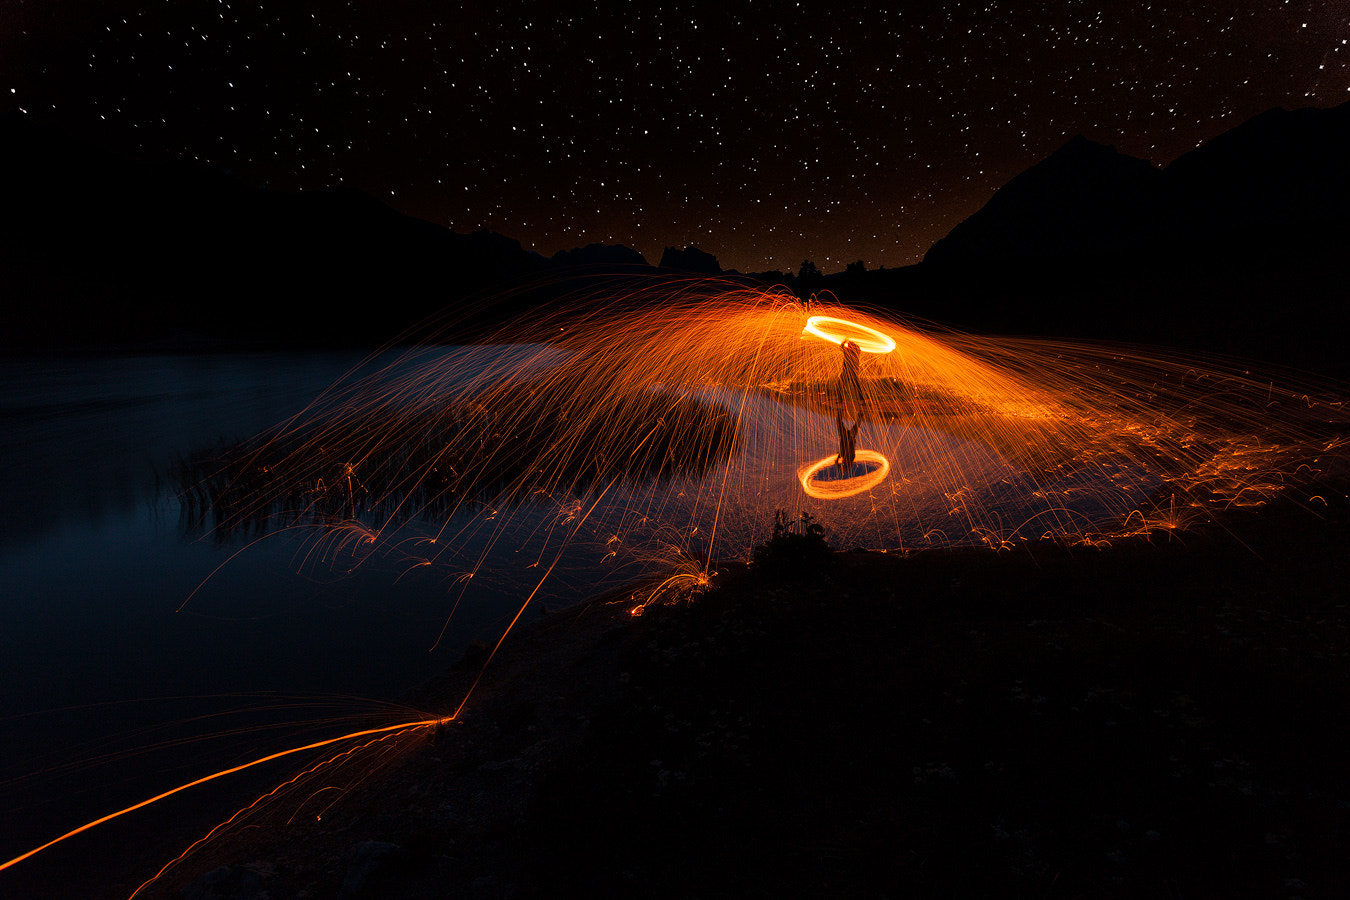 Photograph Steel Fire Under the Stars   by Francesco  Bogetti on 500px